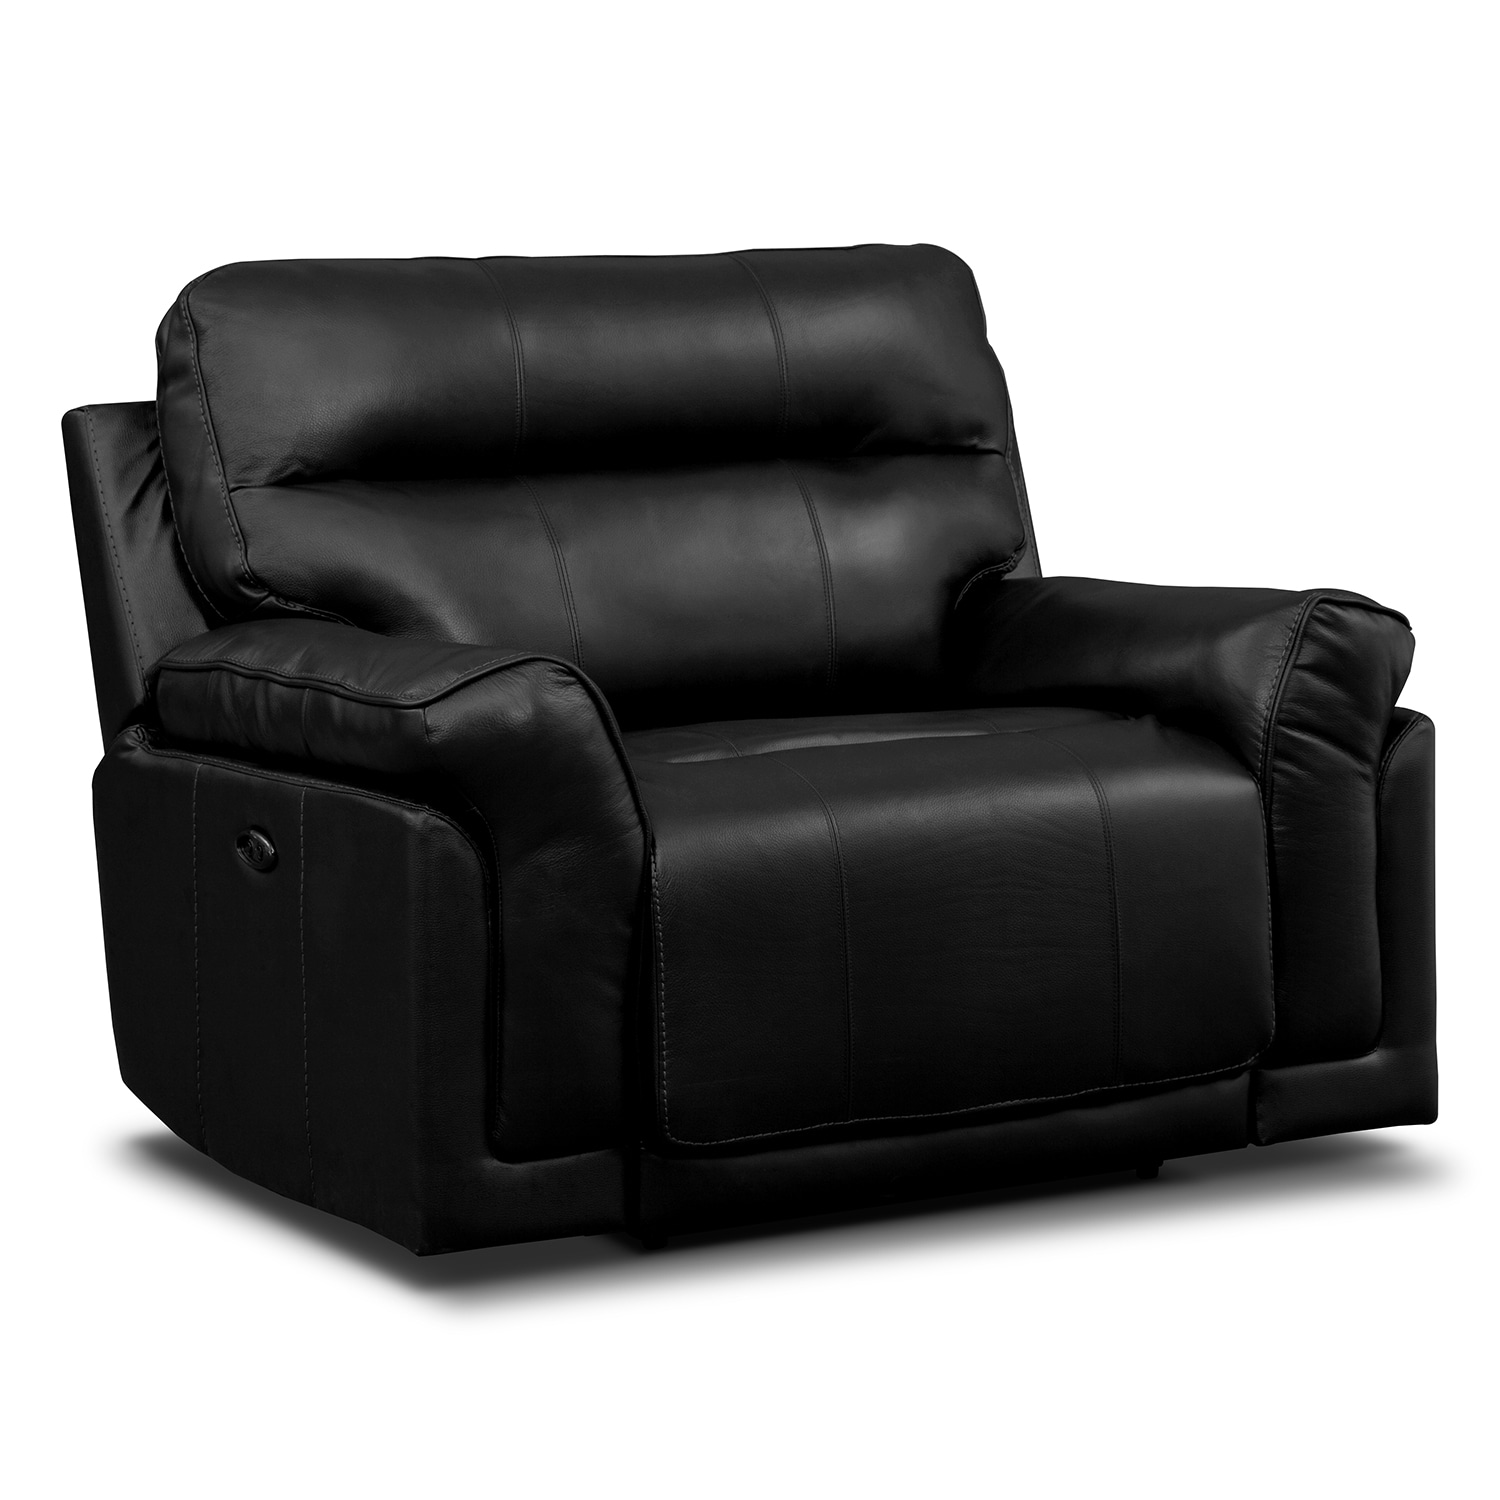 Voyager Power Recliner